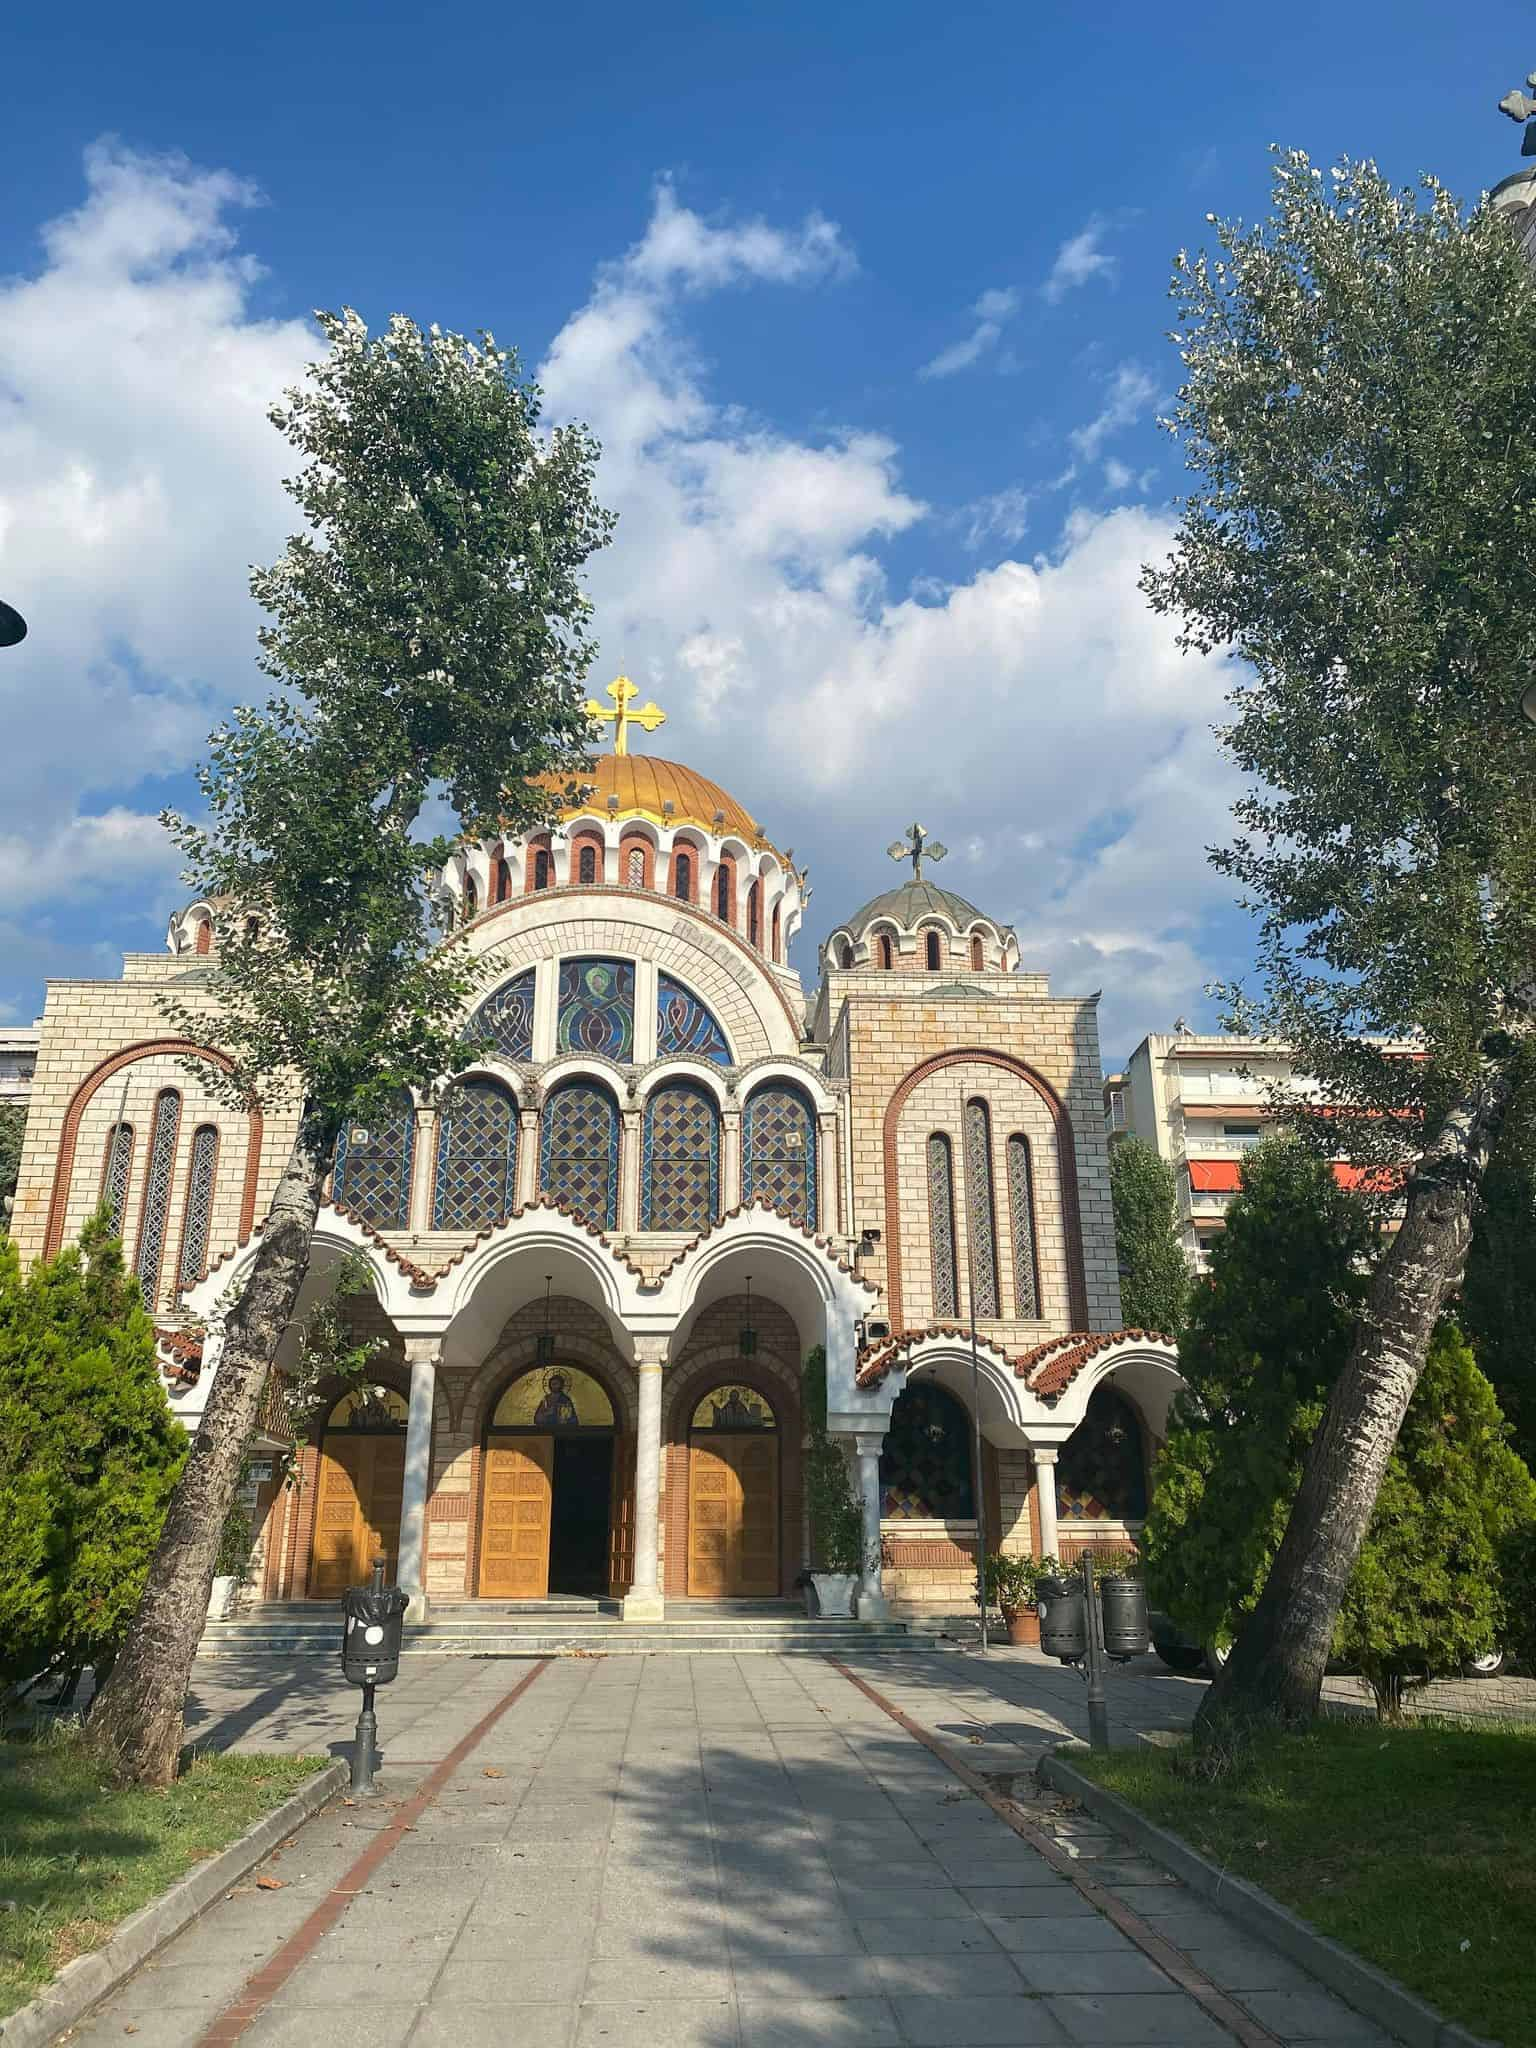 Things to do in Thessaloniki: Visit the churches